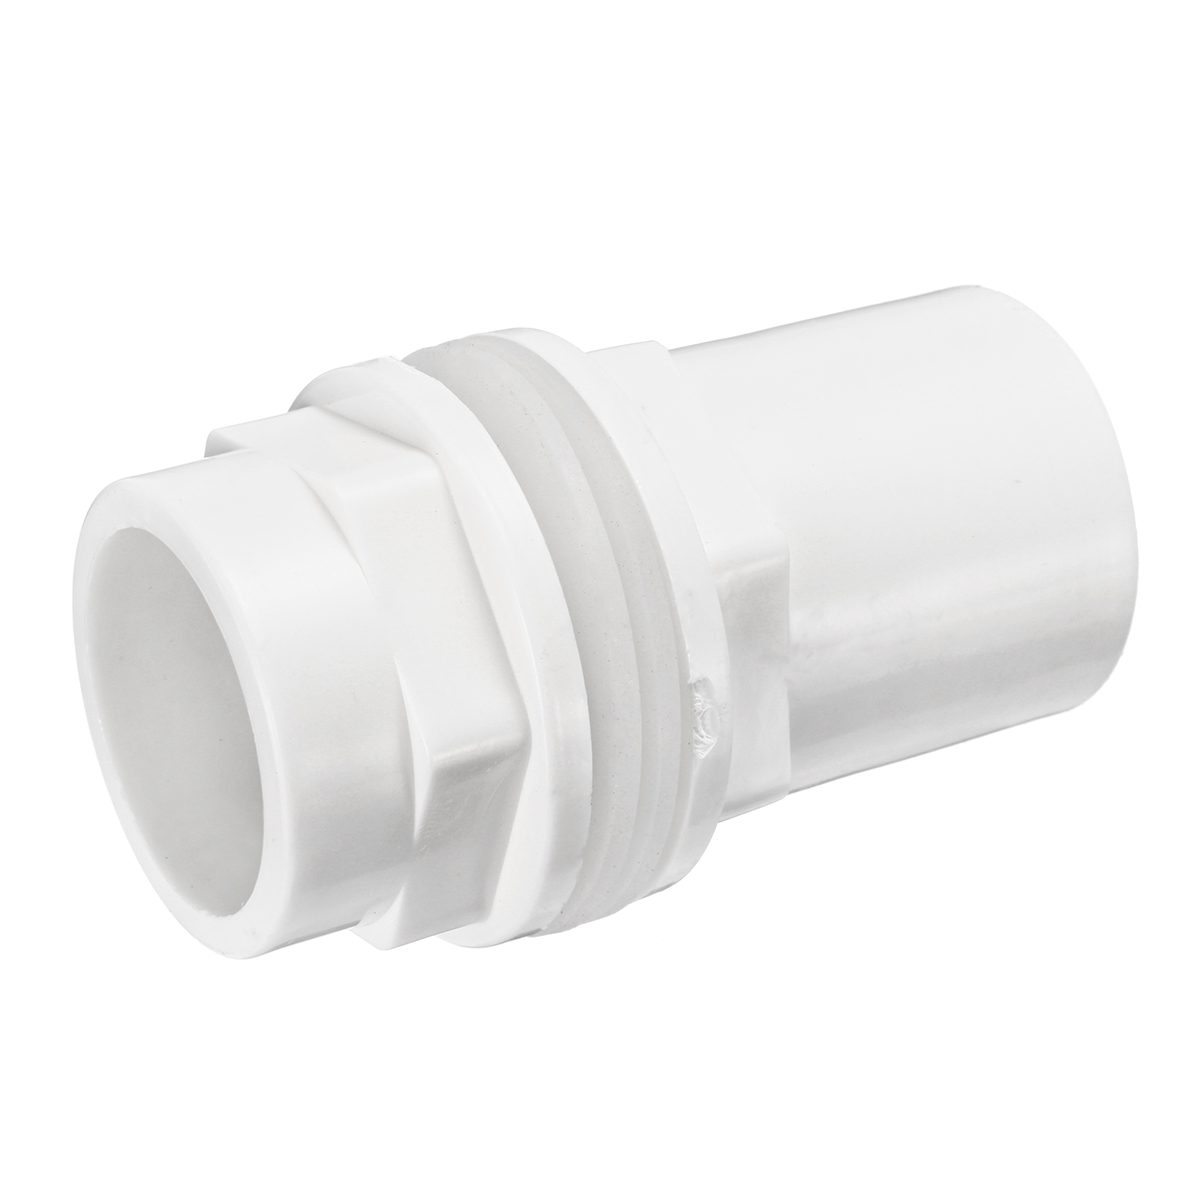 Aquarium Fish Tank Waterproof Pipe Joint Straight Tube Fitting Water Hose Pipe Connectors